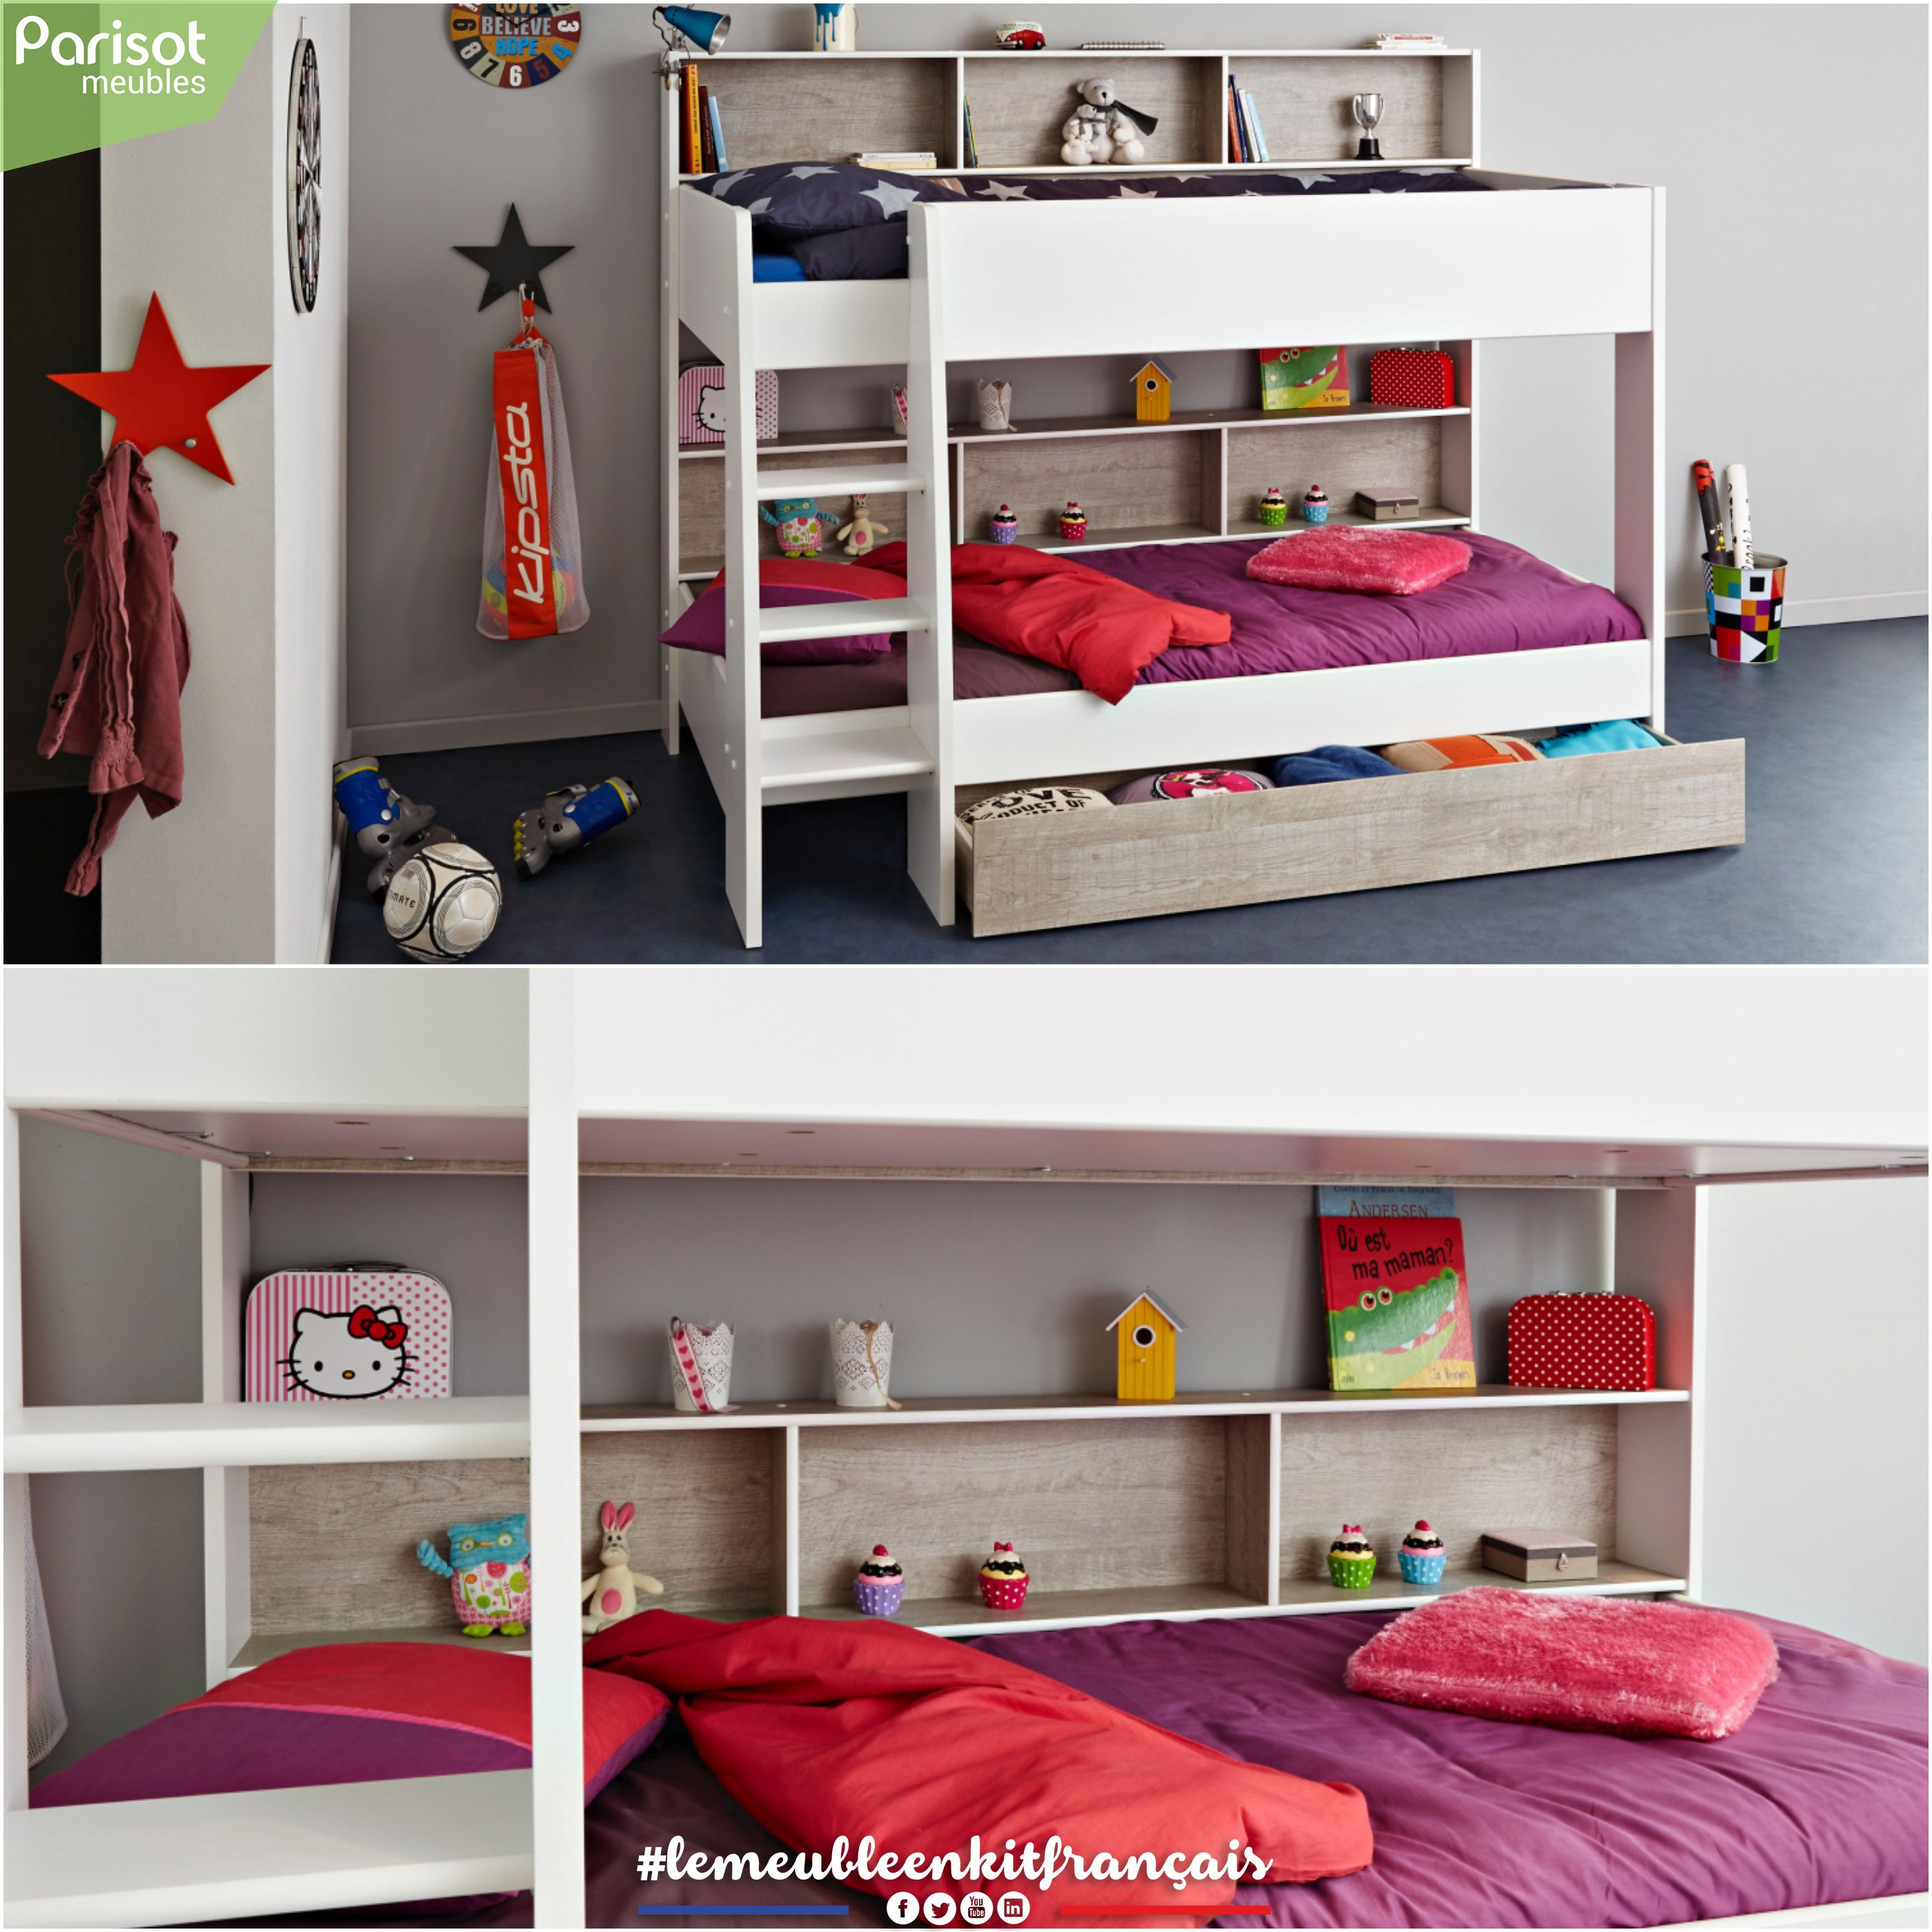 Taylor By Parisot Meubles This Bunk Bed Allows To Save Space With Storage Areas On The Top And Below A Shaped Scale Allows An Easy Mobilier De Salon Interieur